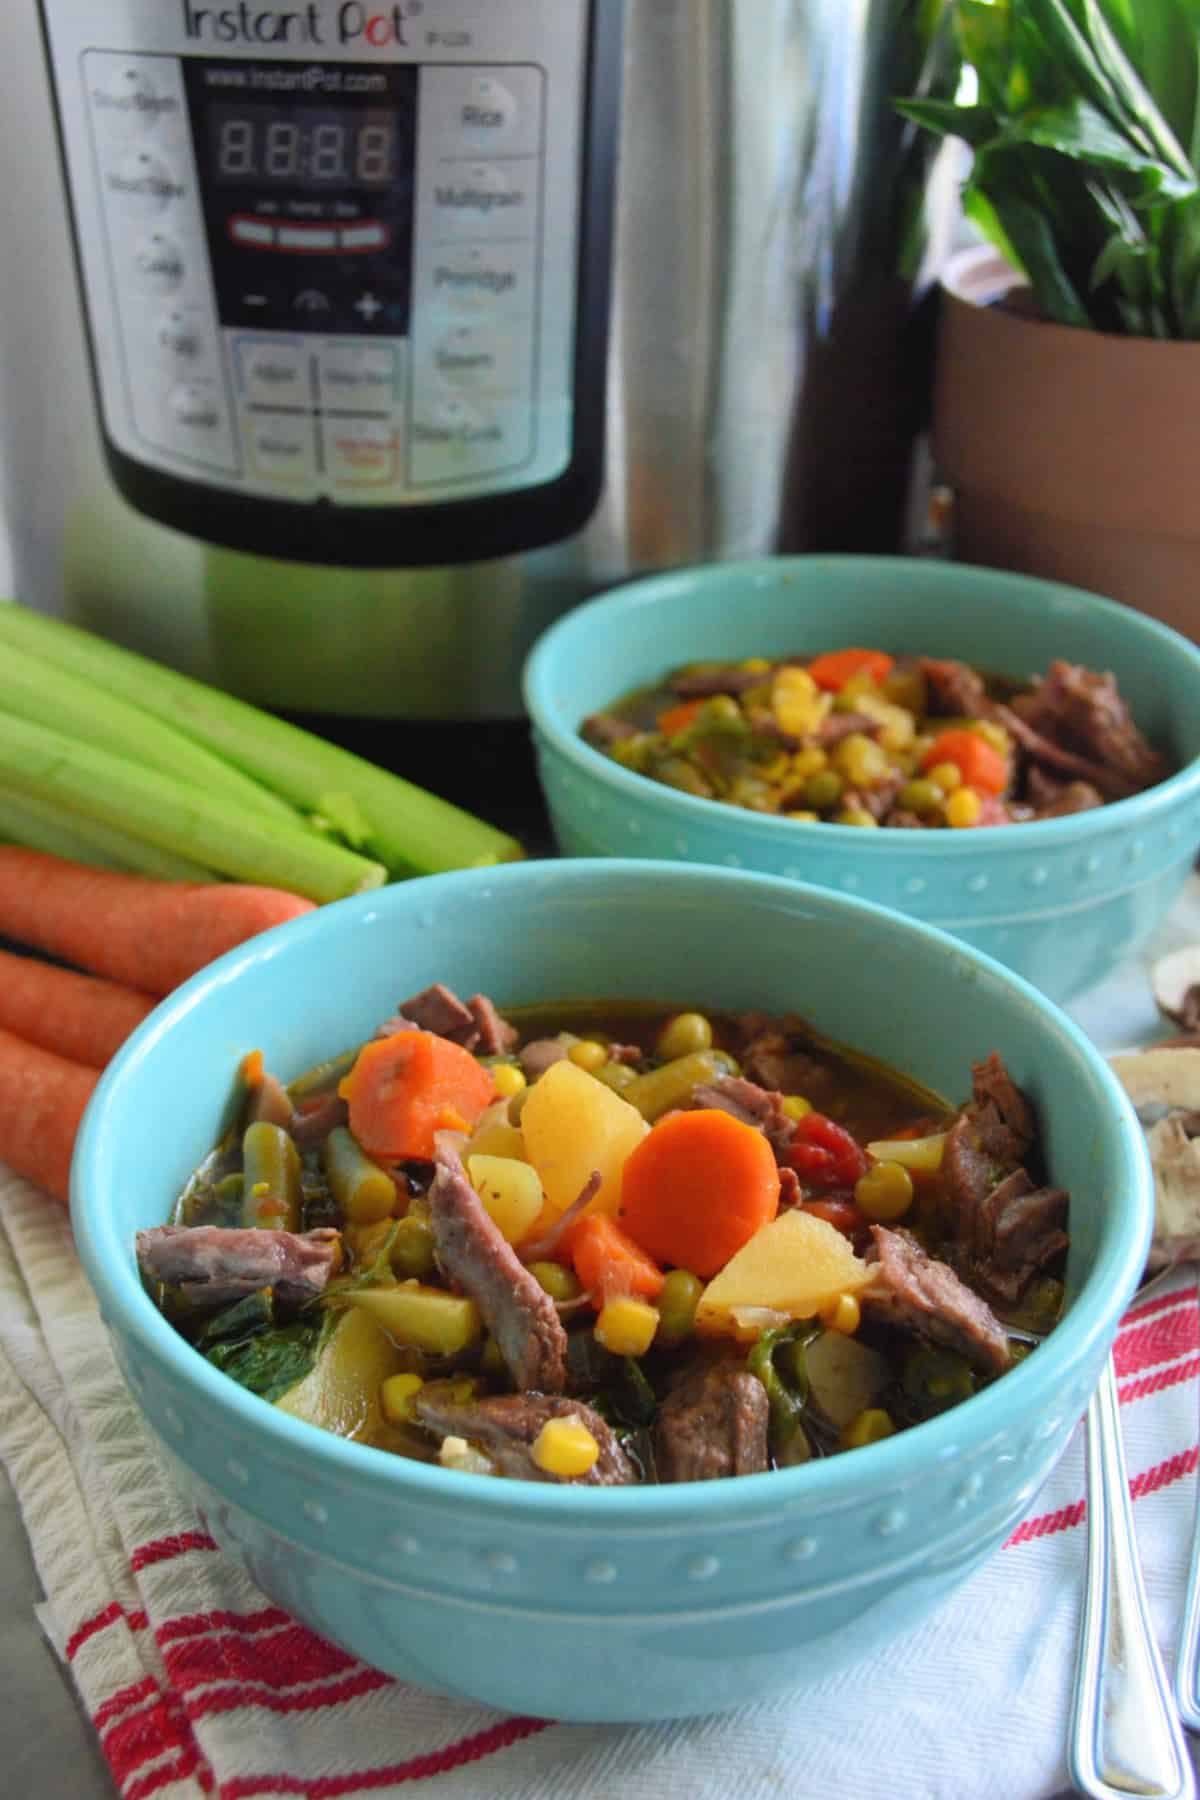 Two bowls Vegetable Beef Soup next to fresh celery and carrots with Instant Pot in the background.